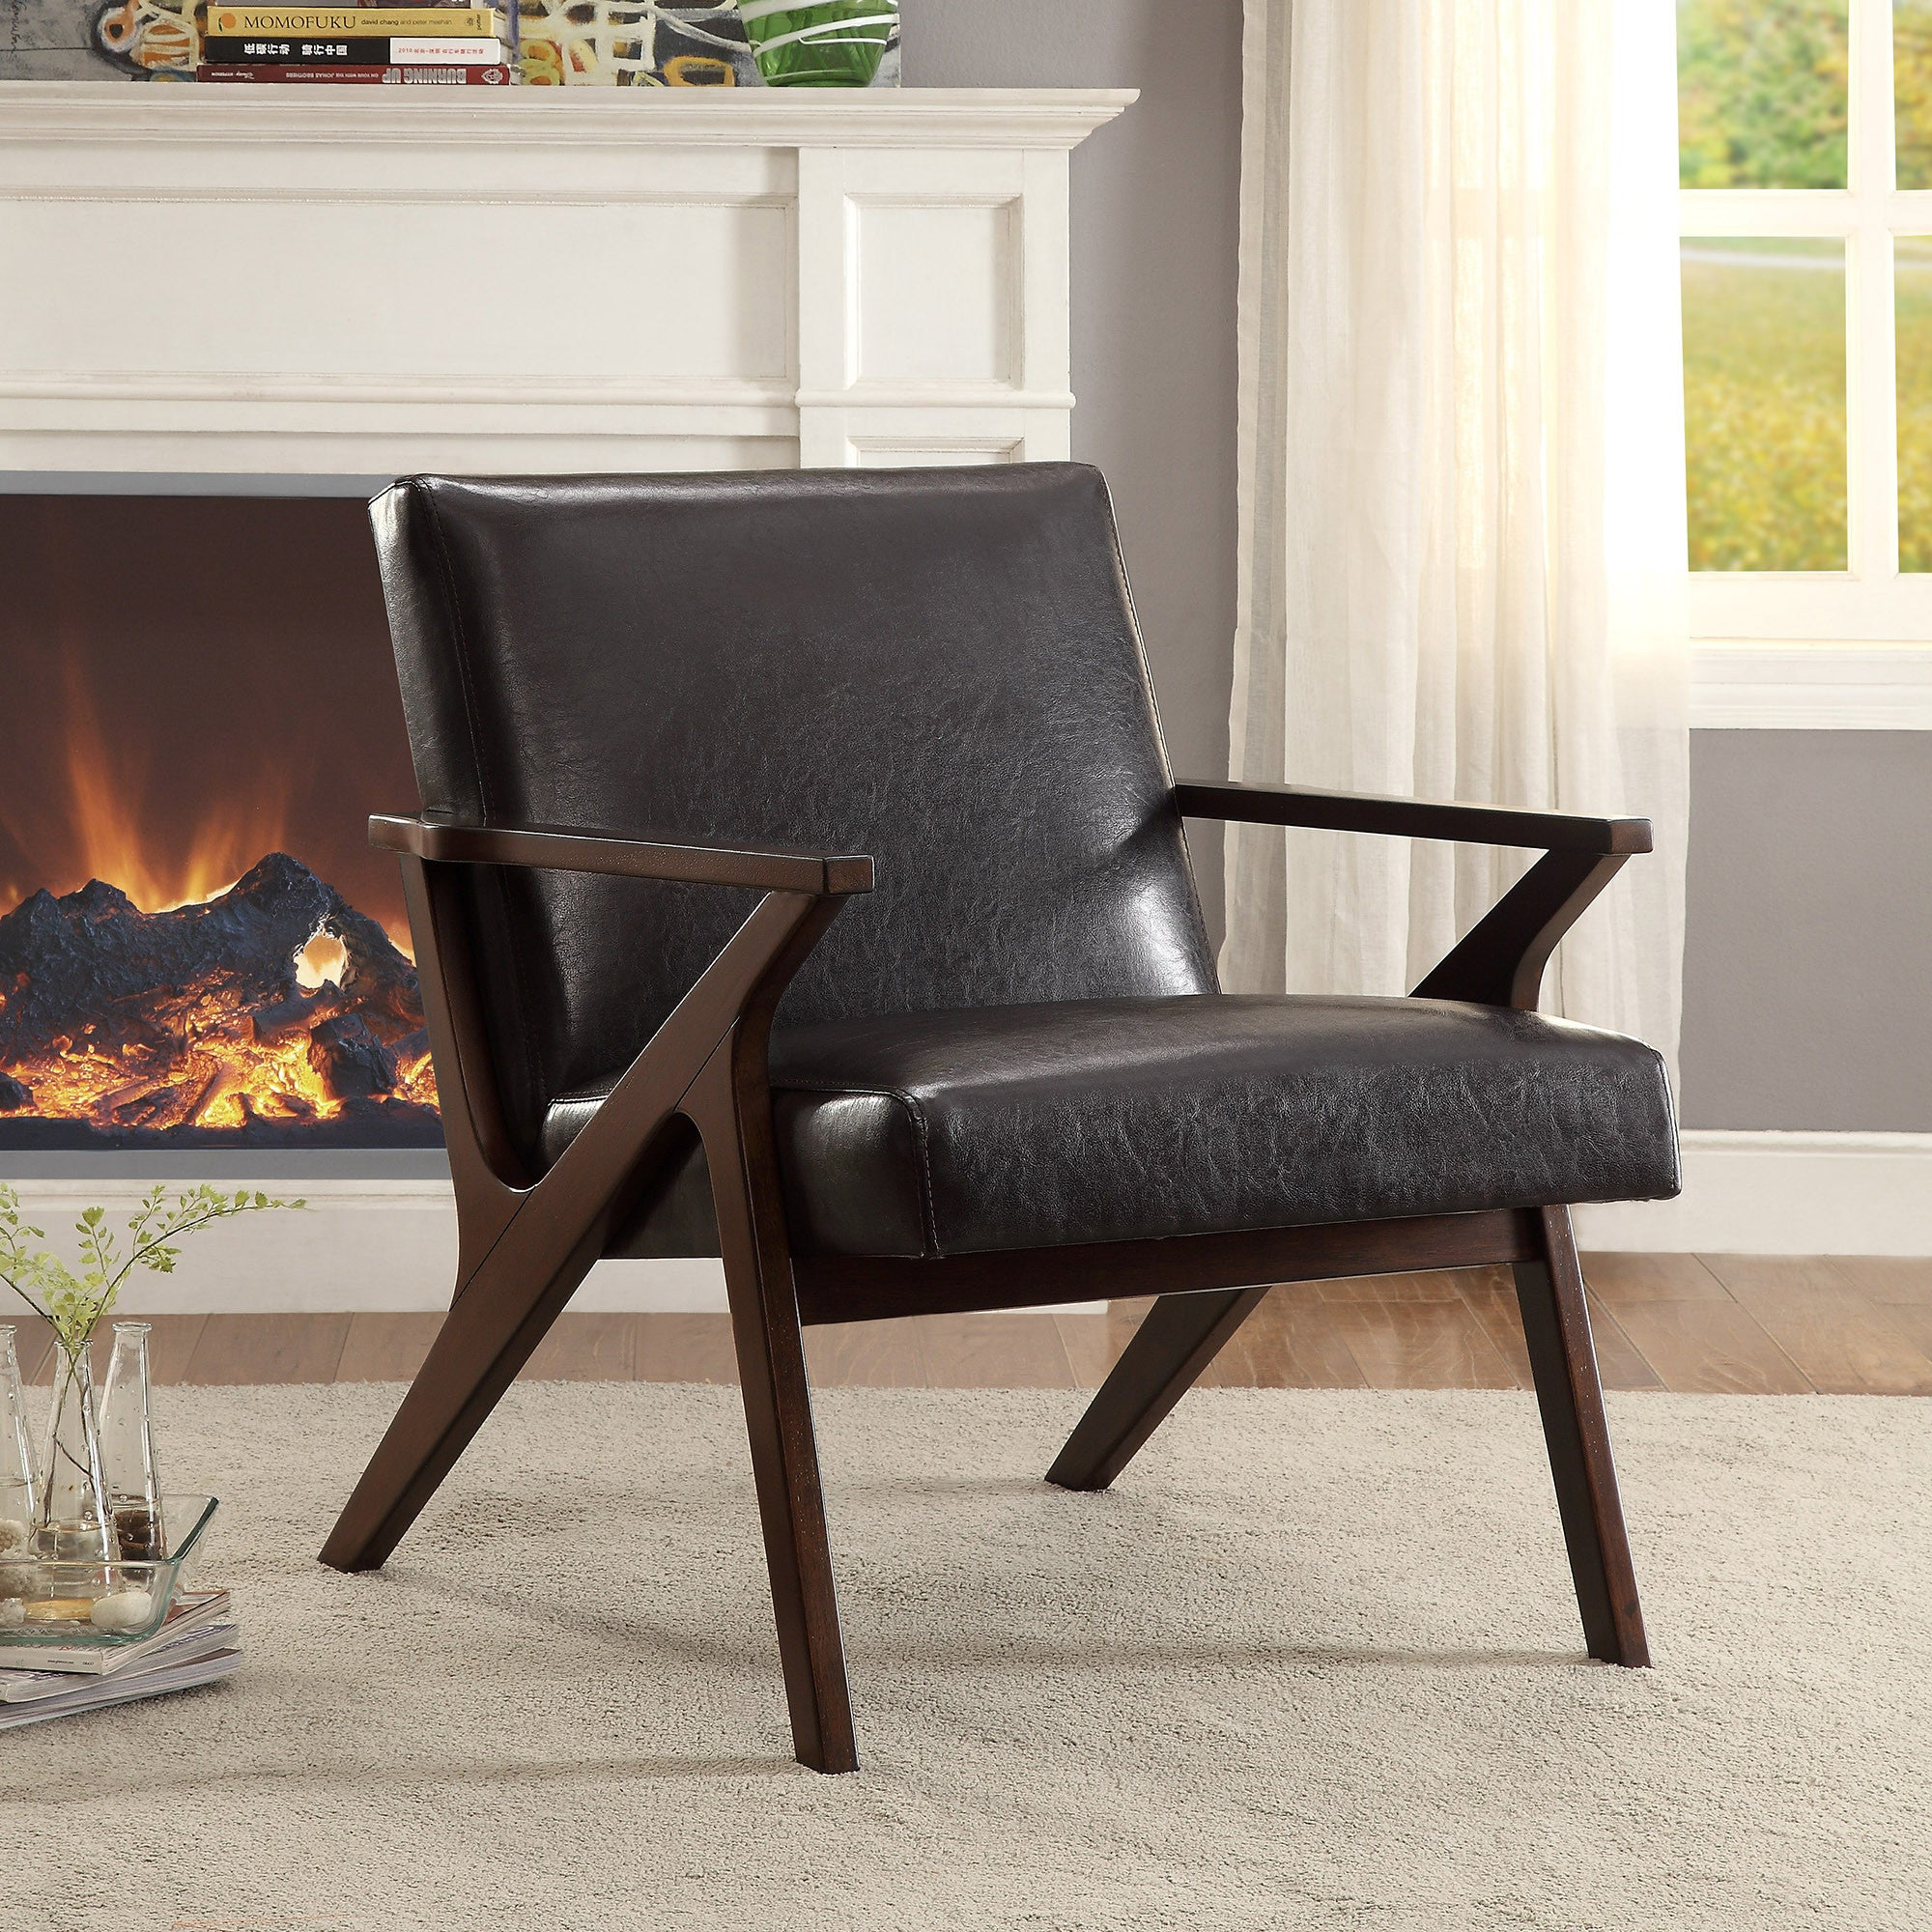 fairfield oakland dfs accent chair browncombination